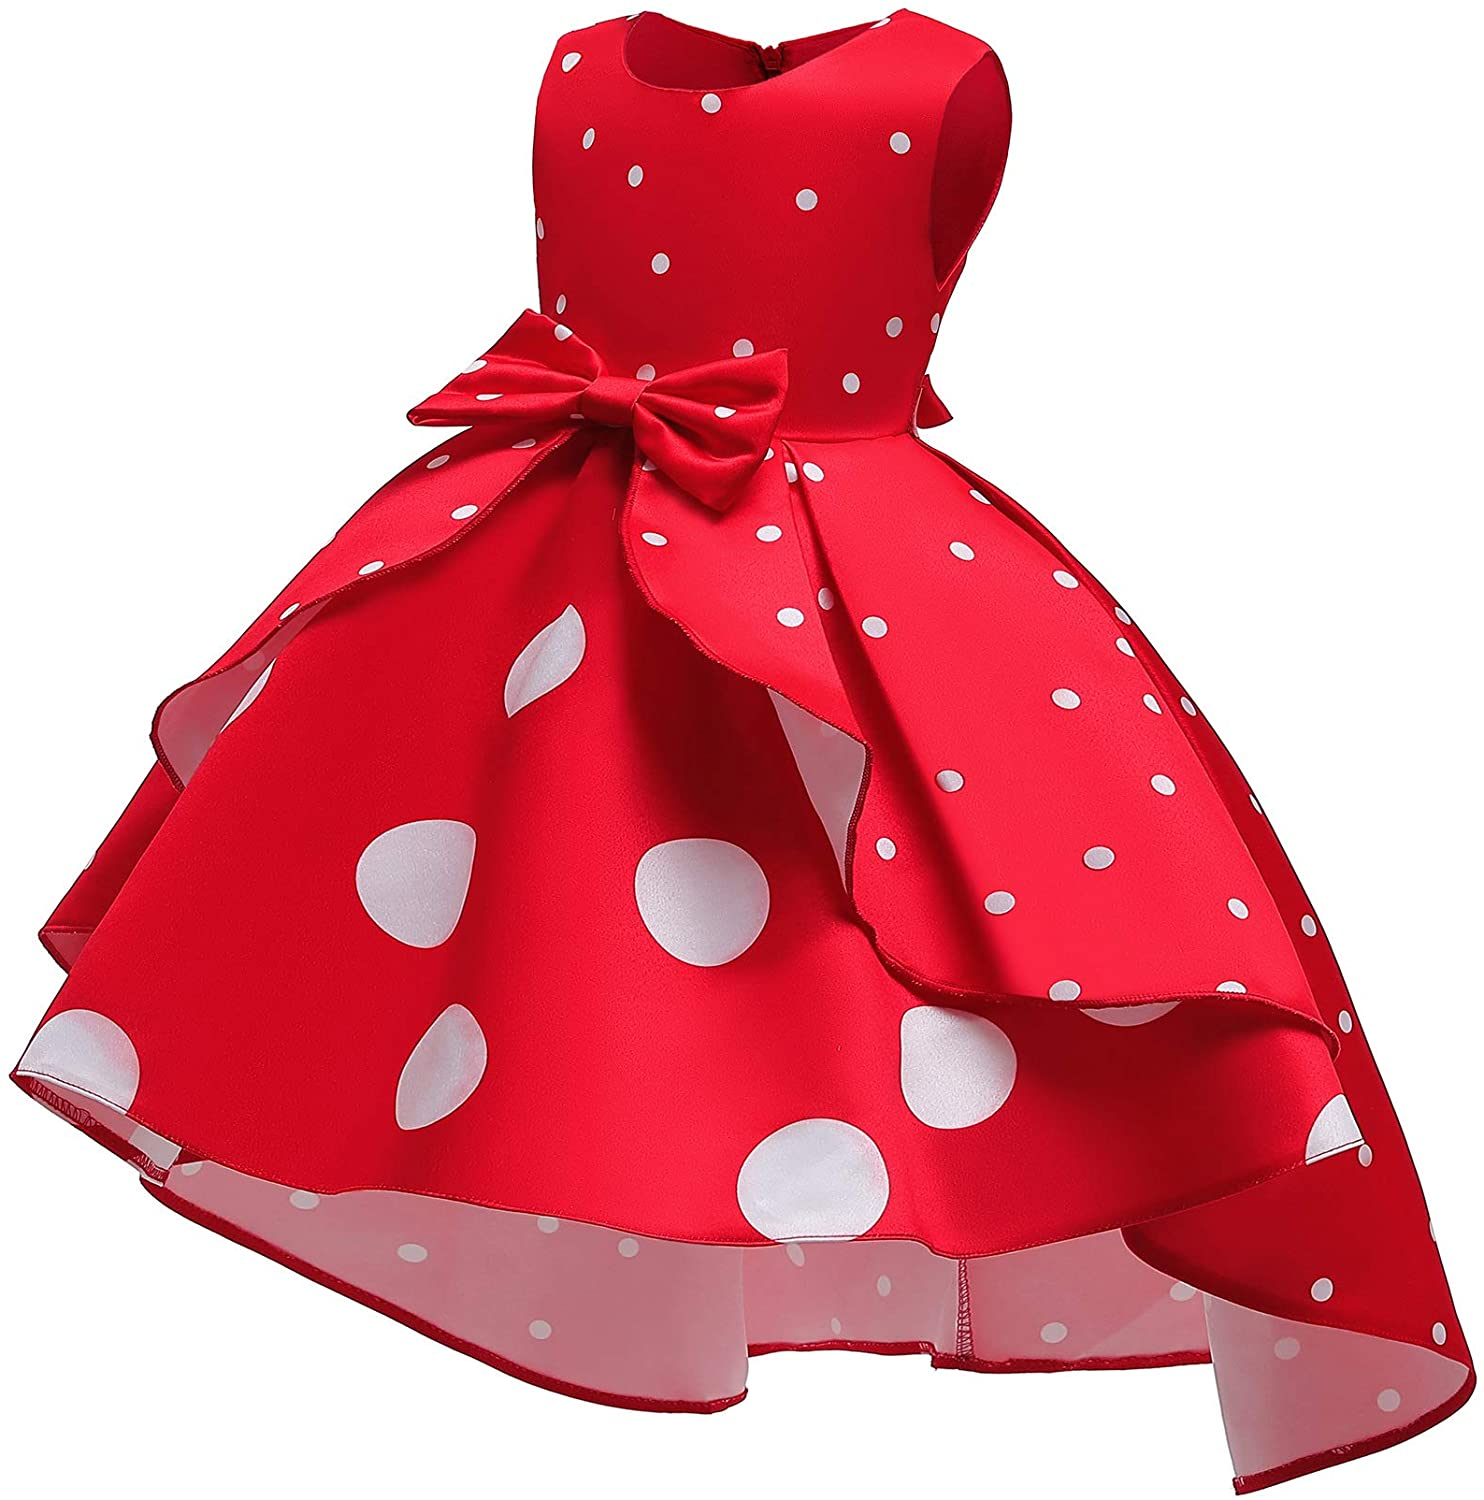 Cichic Girls Max 41% OFF Party Credence Dress Dresses for Princess Formal